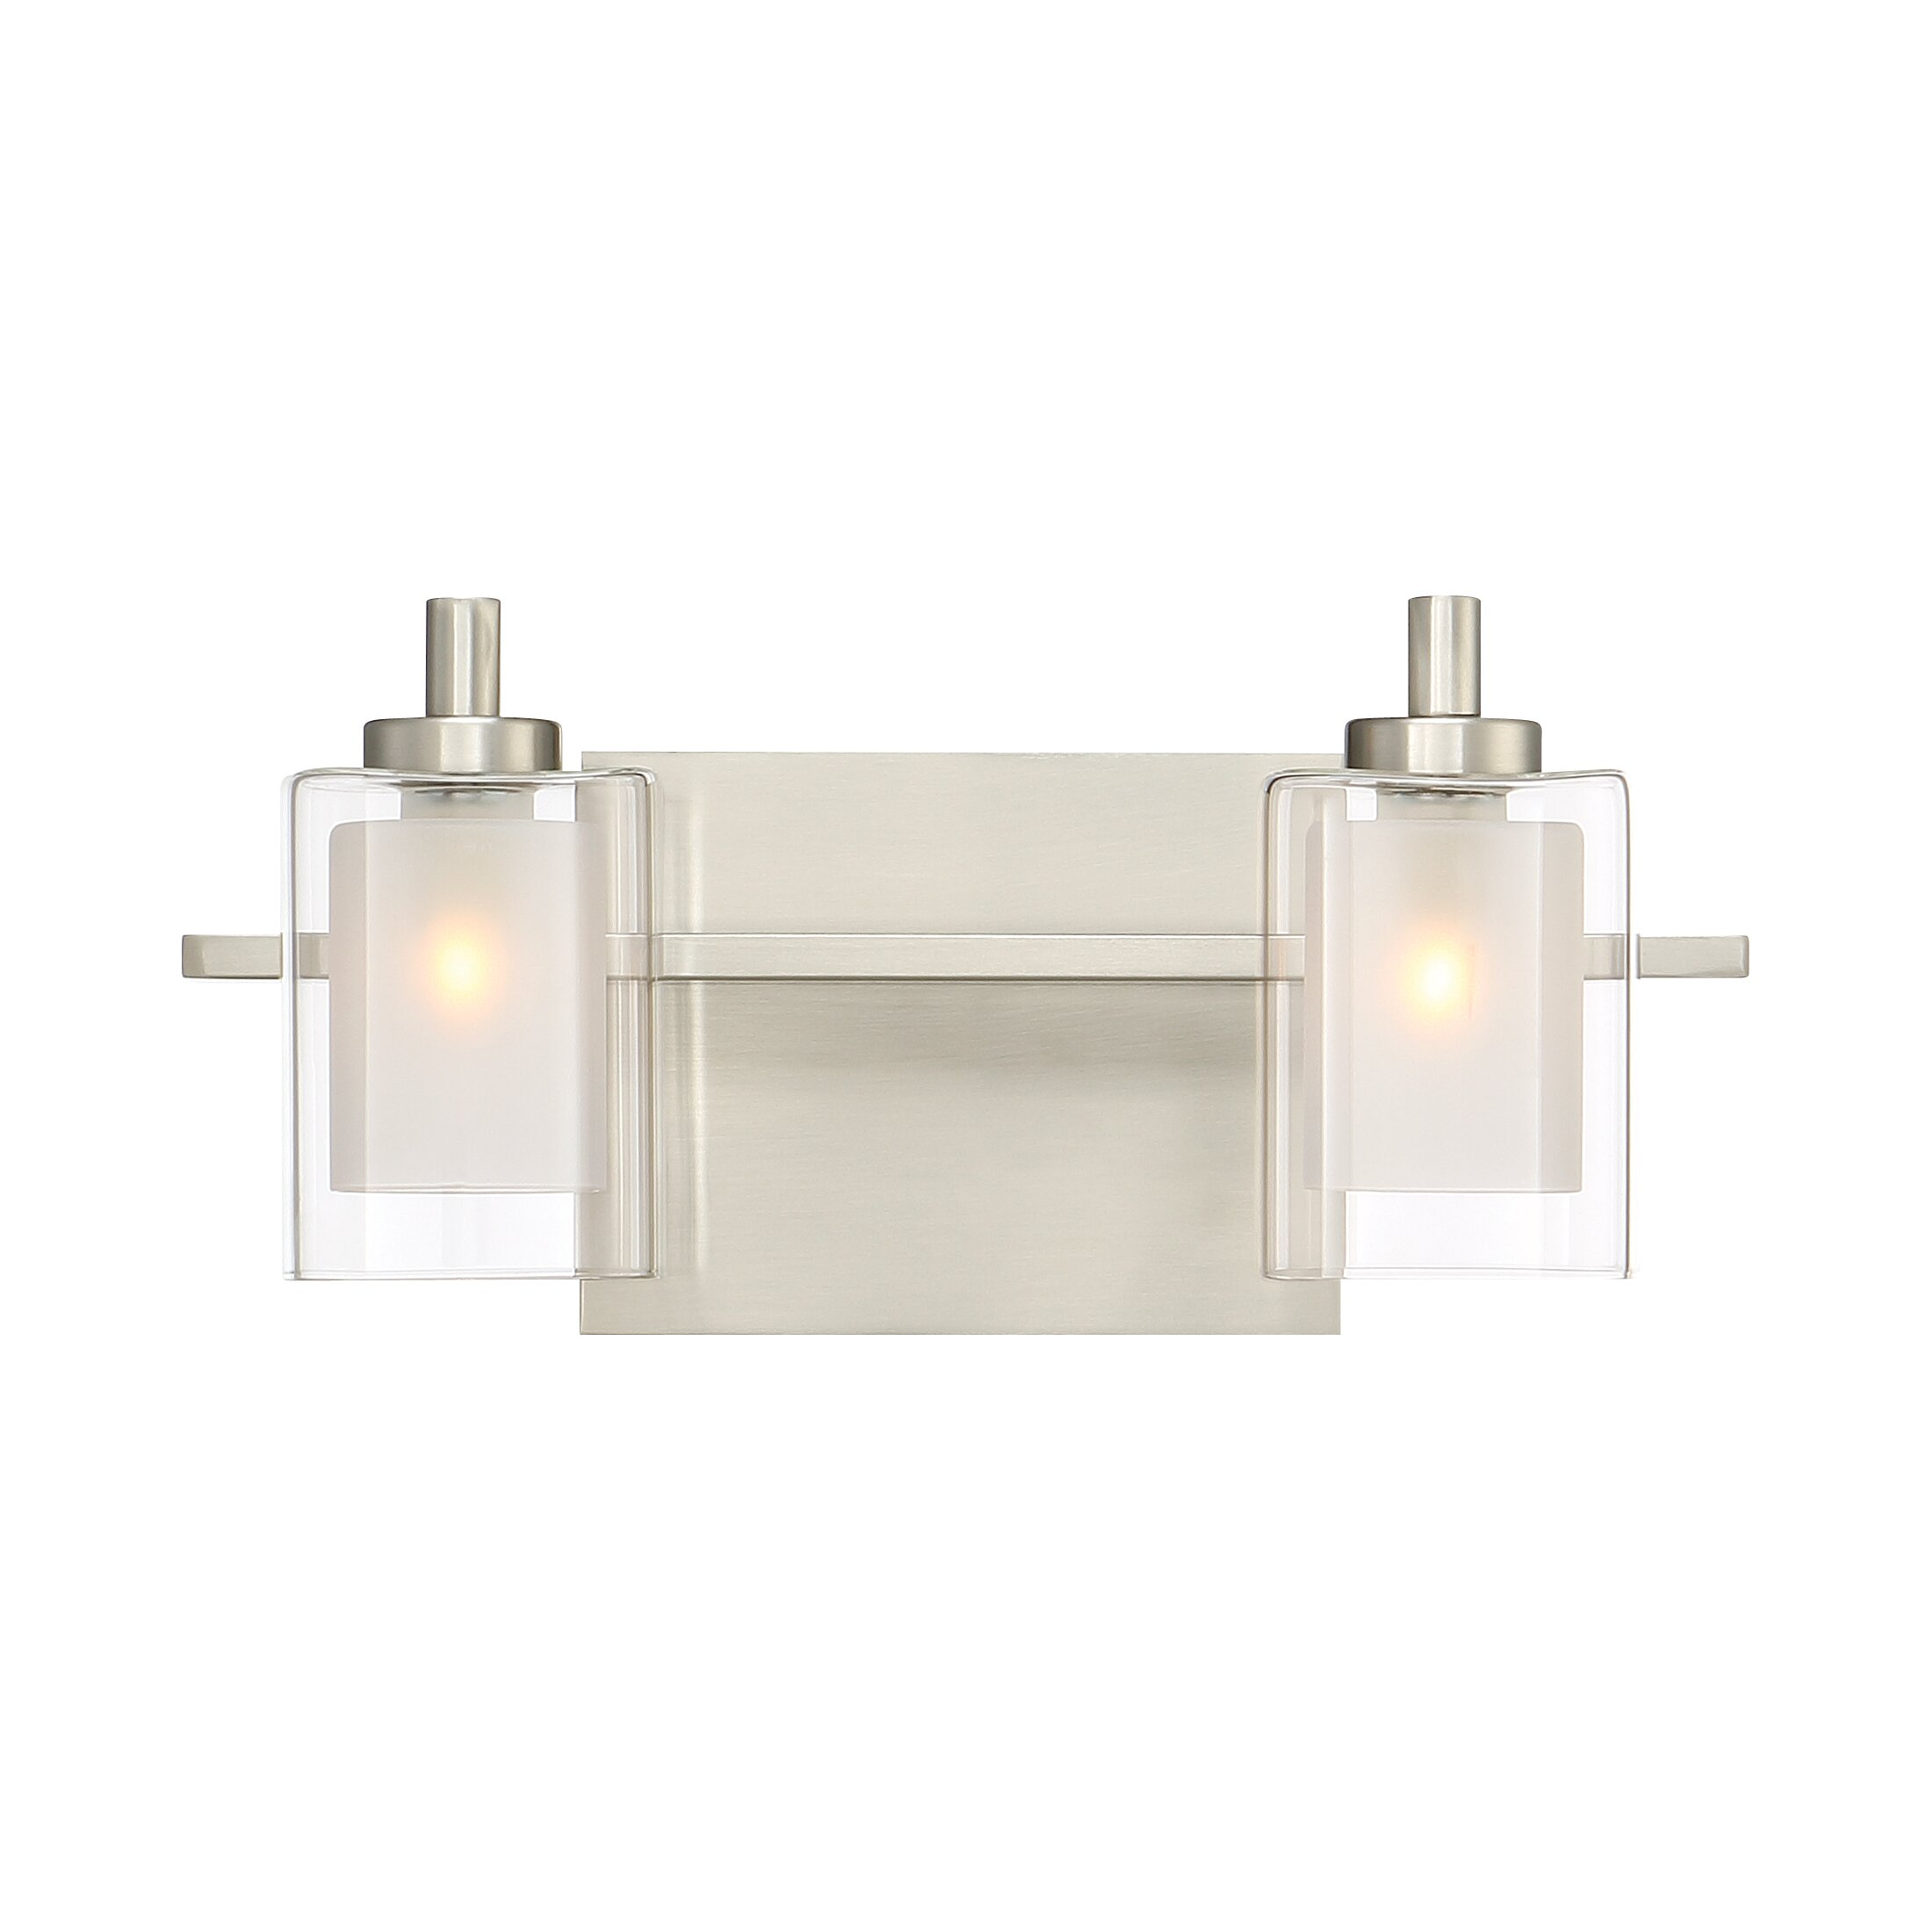 bathroom vanity lighting pictures quoizel kolt 2 light vanity light amp reviews wayfair 17008